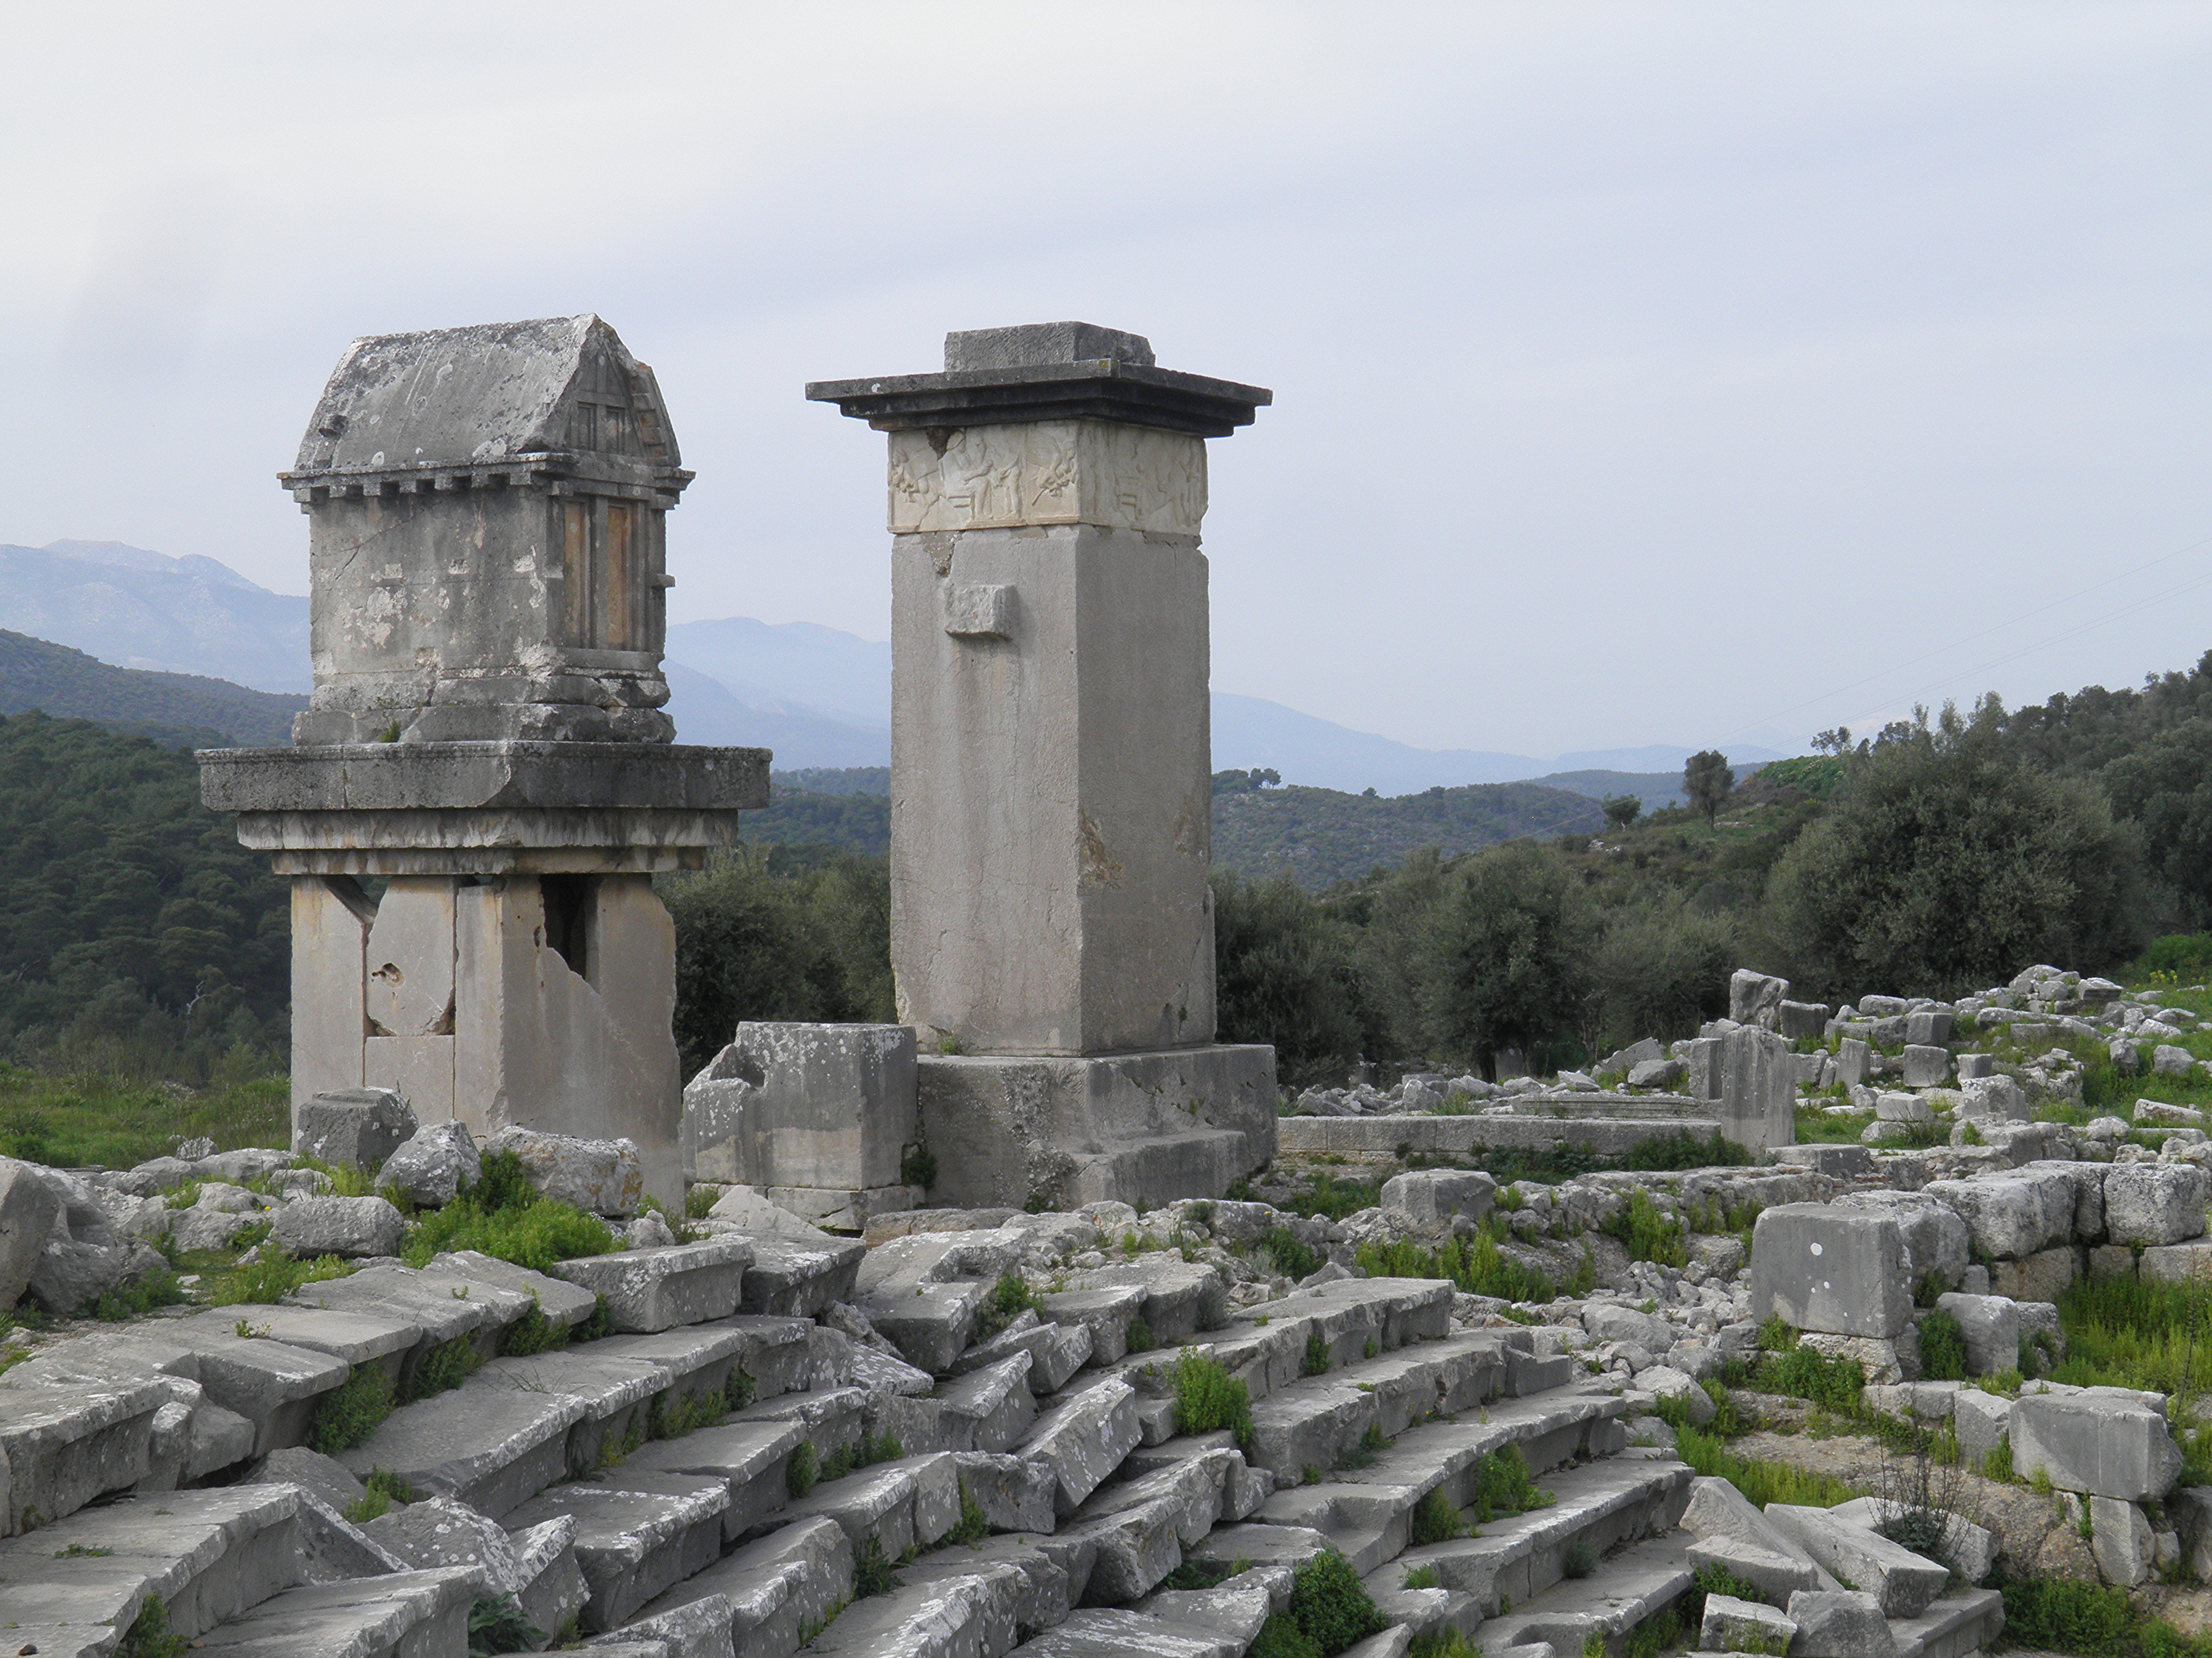 File:Lycian monumental tombs, the Harpy tomb and the pillared sarcophagus, Xanthos, Lycia, Turkey (8814489373).jpg - Wikimedia Commons